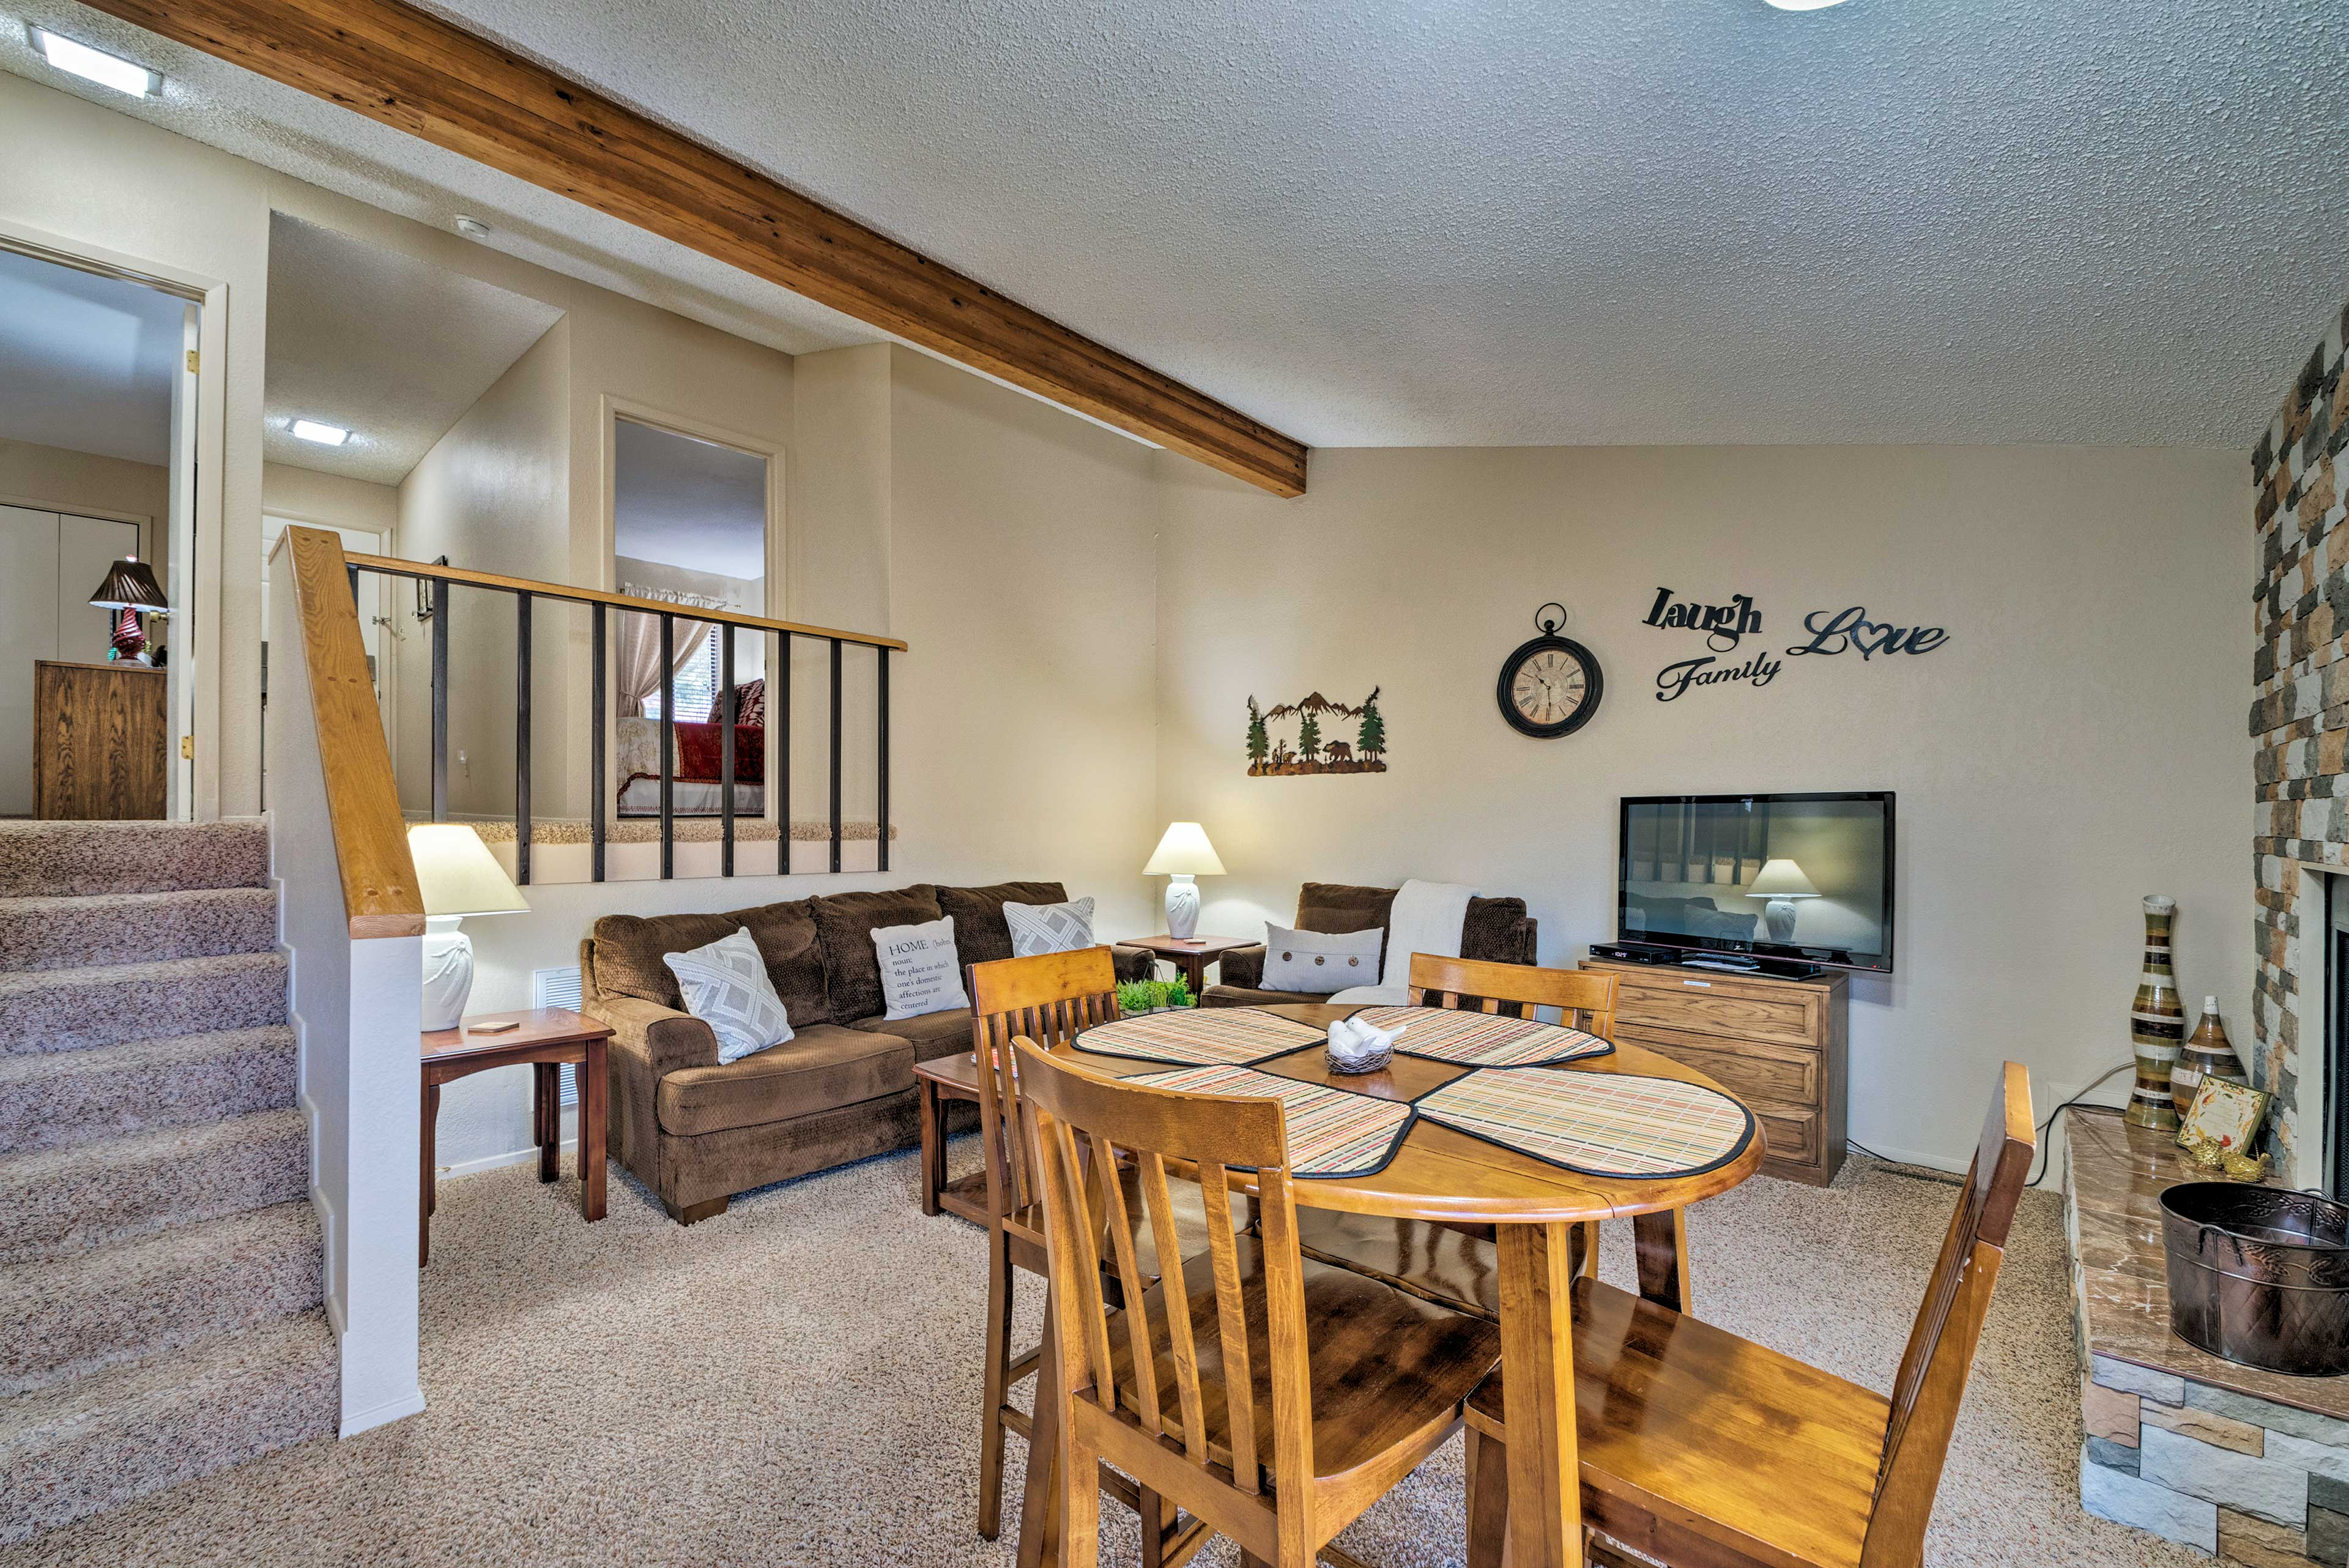 Settle in for a movie night by the fire on the flat-screen cable TV.